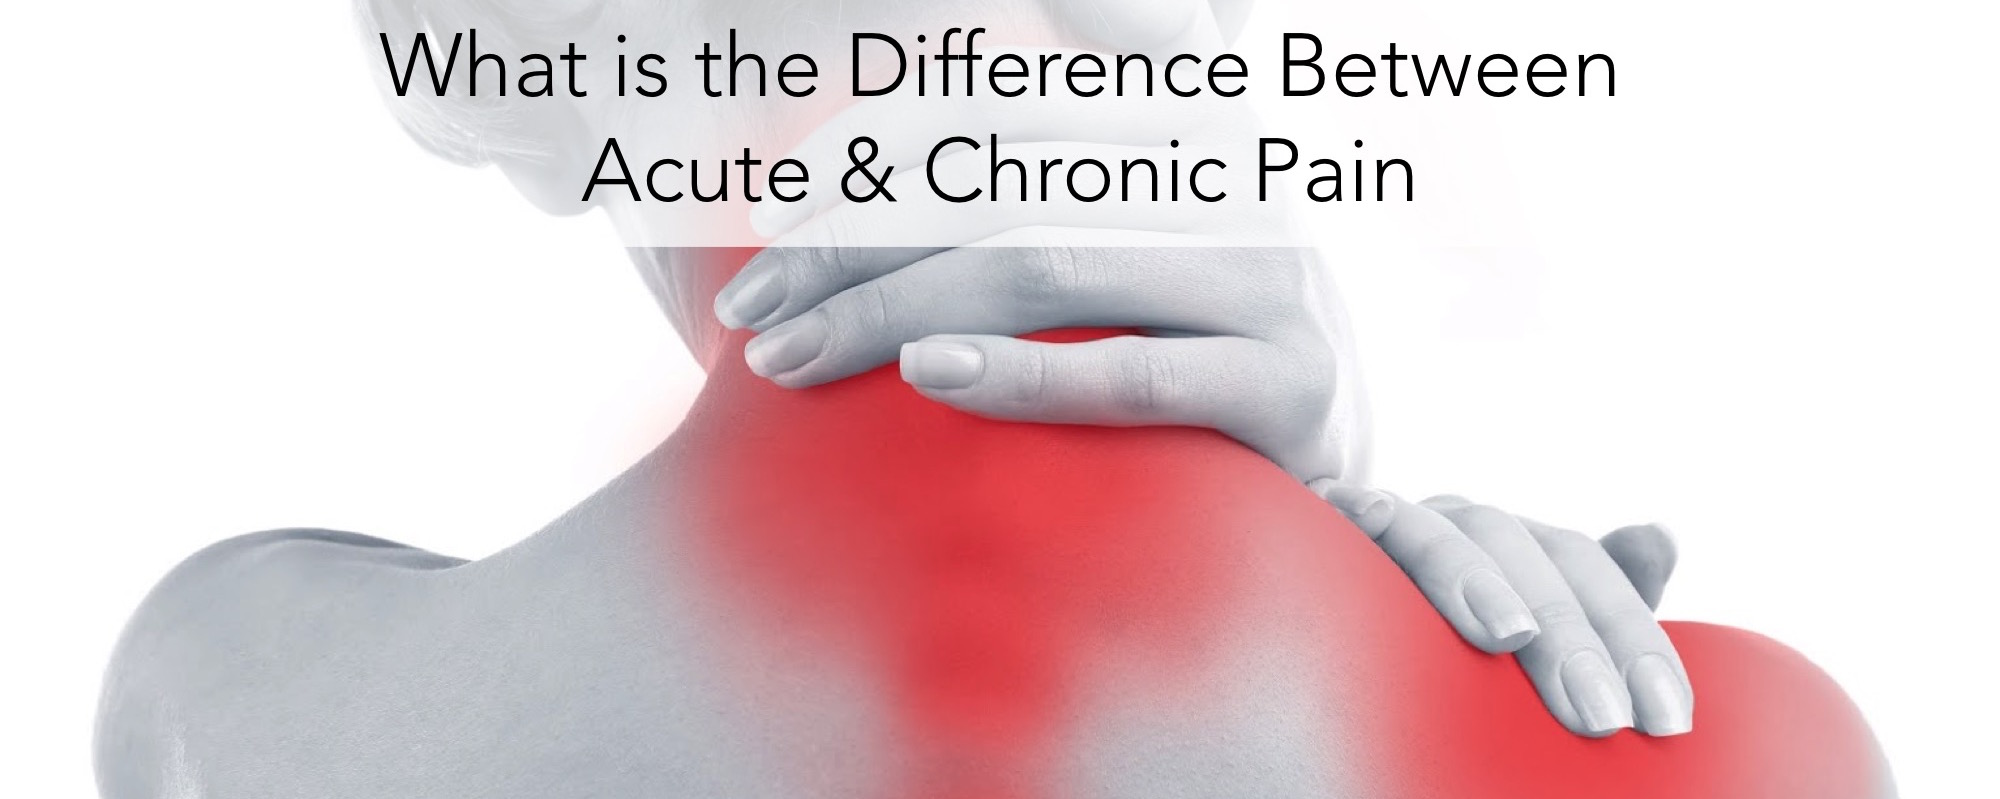 What is the Difference Between Acute and Chronic Pain?